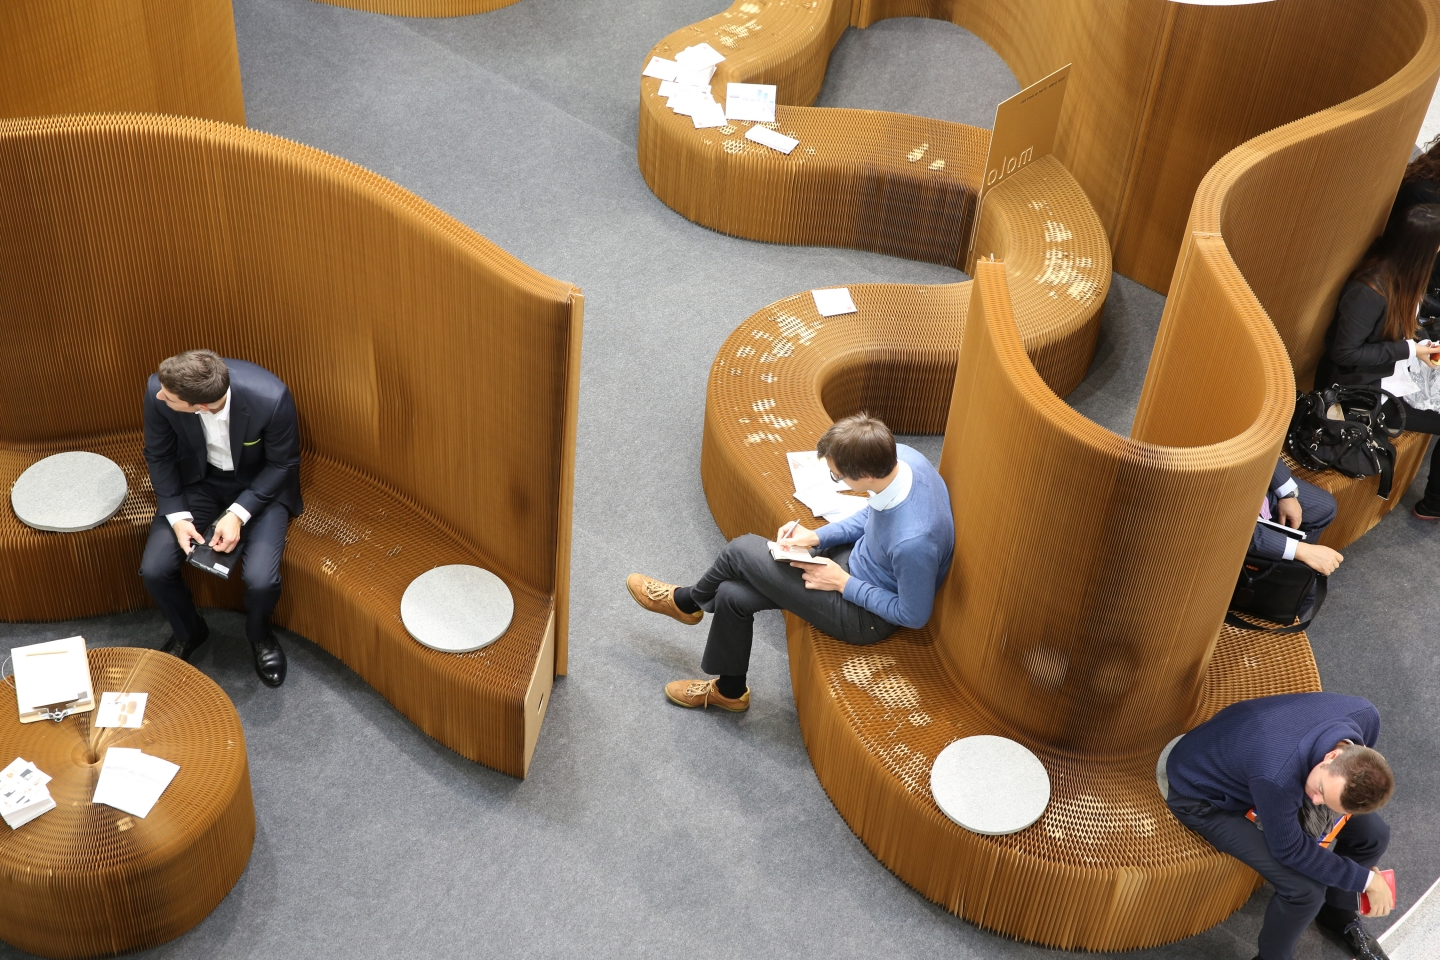 modular paper benchwall highbacked seating illuminate by cloud lighting by molo - with use over the course of the trade show, the surface of benchwall crushes into a pleasing patina